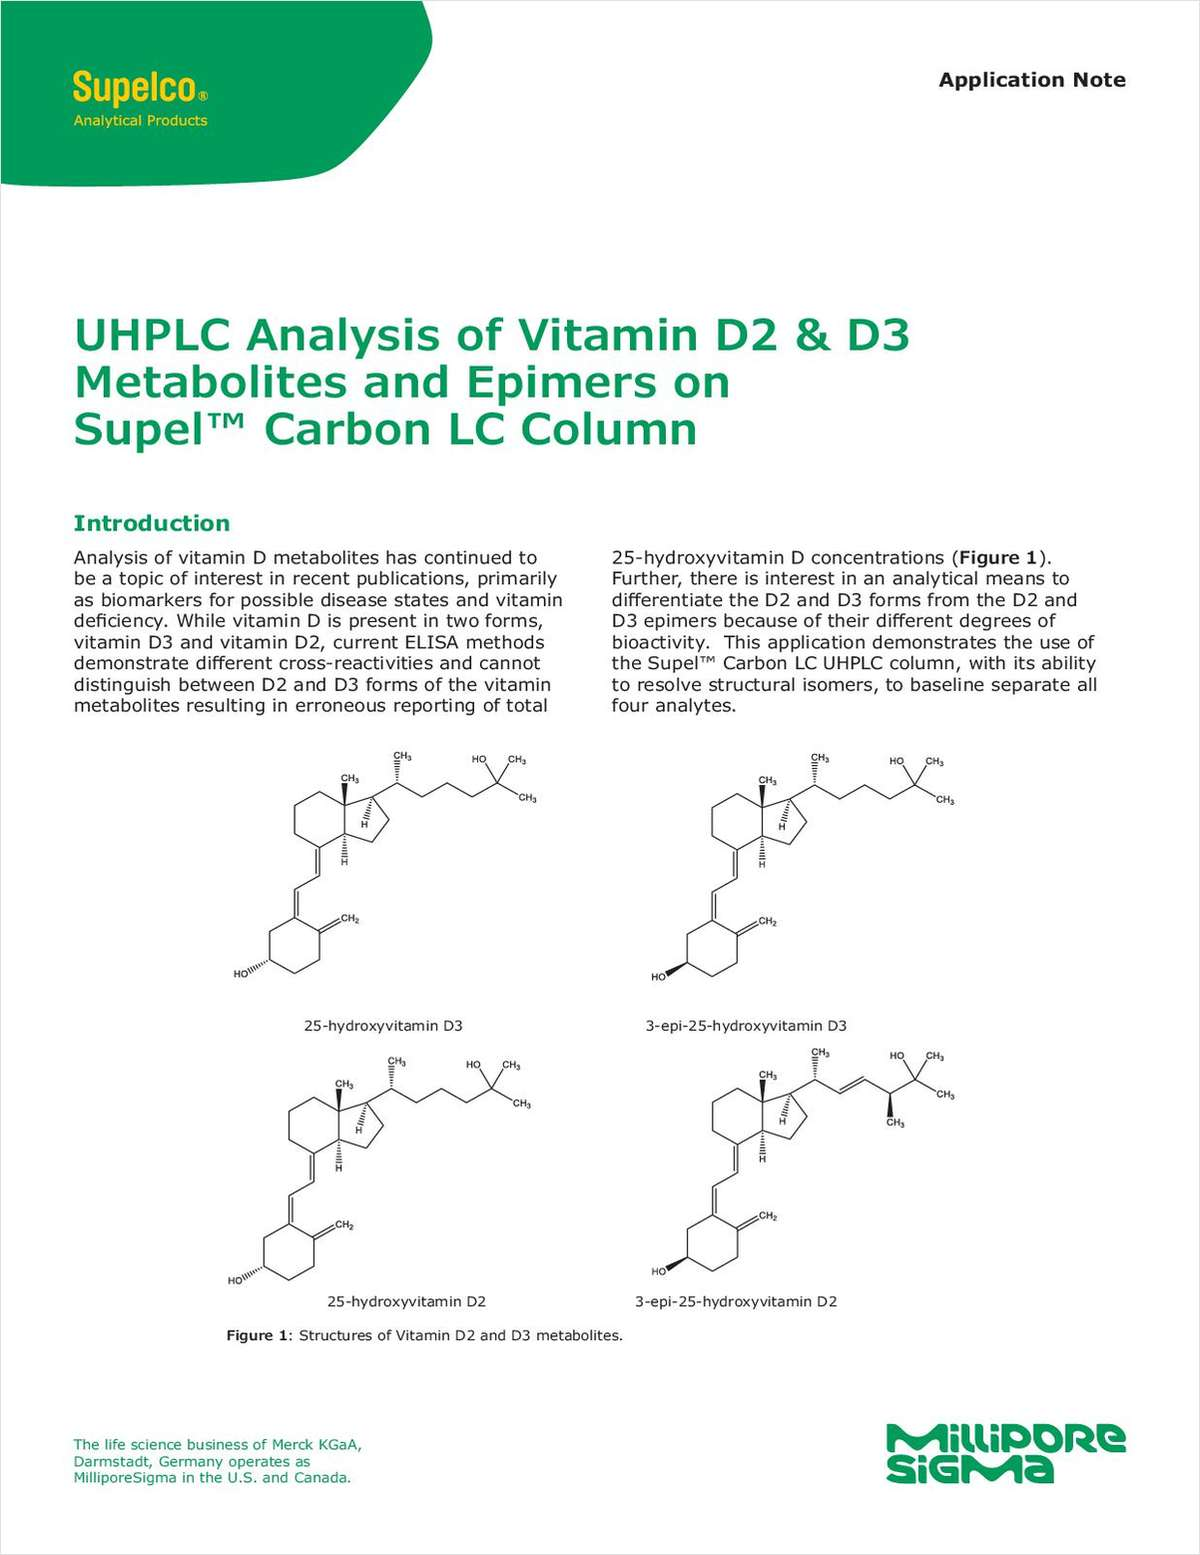 UHPLC Analysis of Vitamin D2 & D3 Metabolites and Epimers on Supel Carbon LC Column